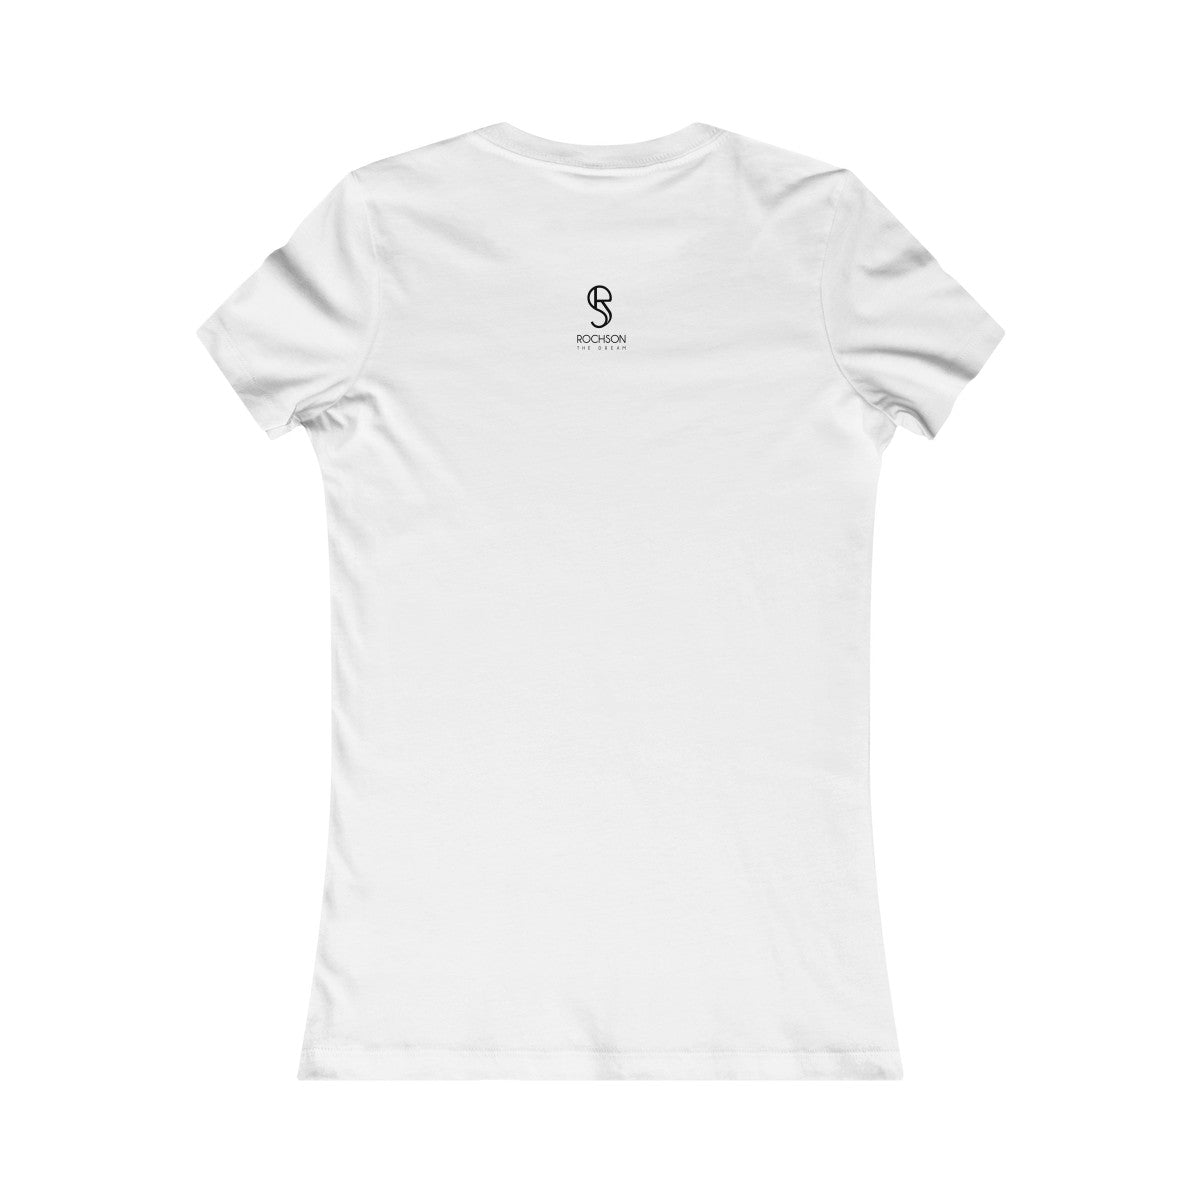 The Dream - Tee-shirt Femme